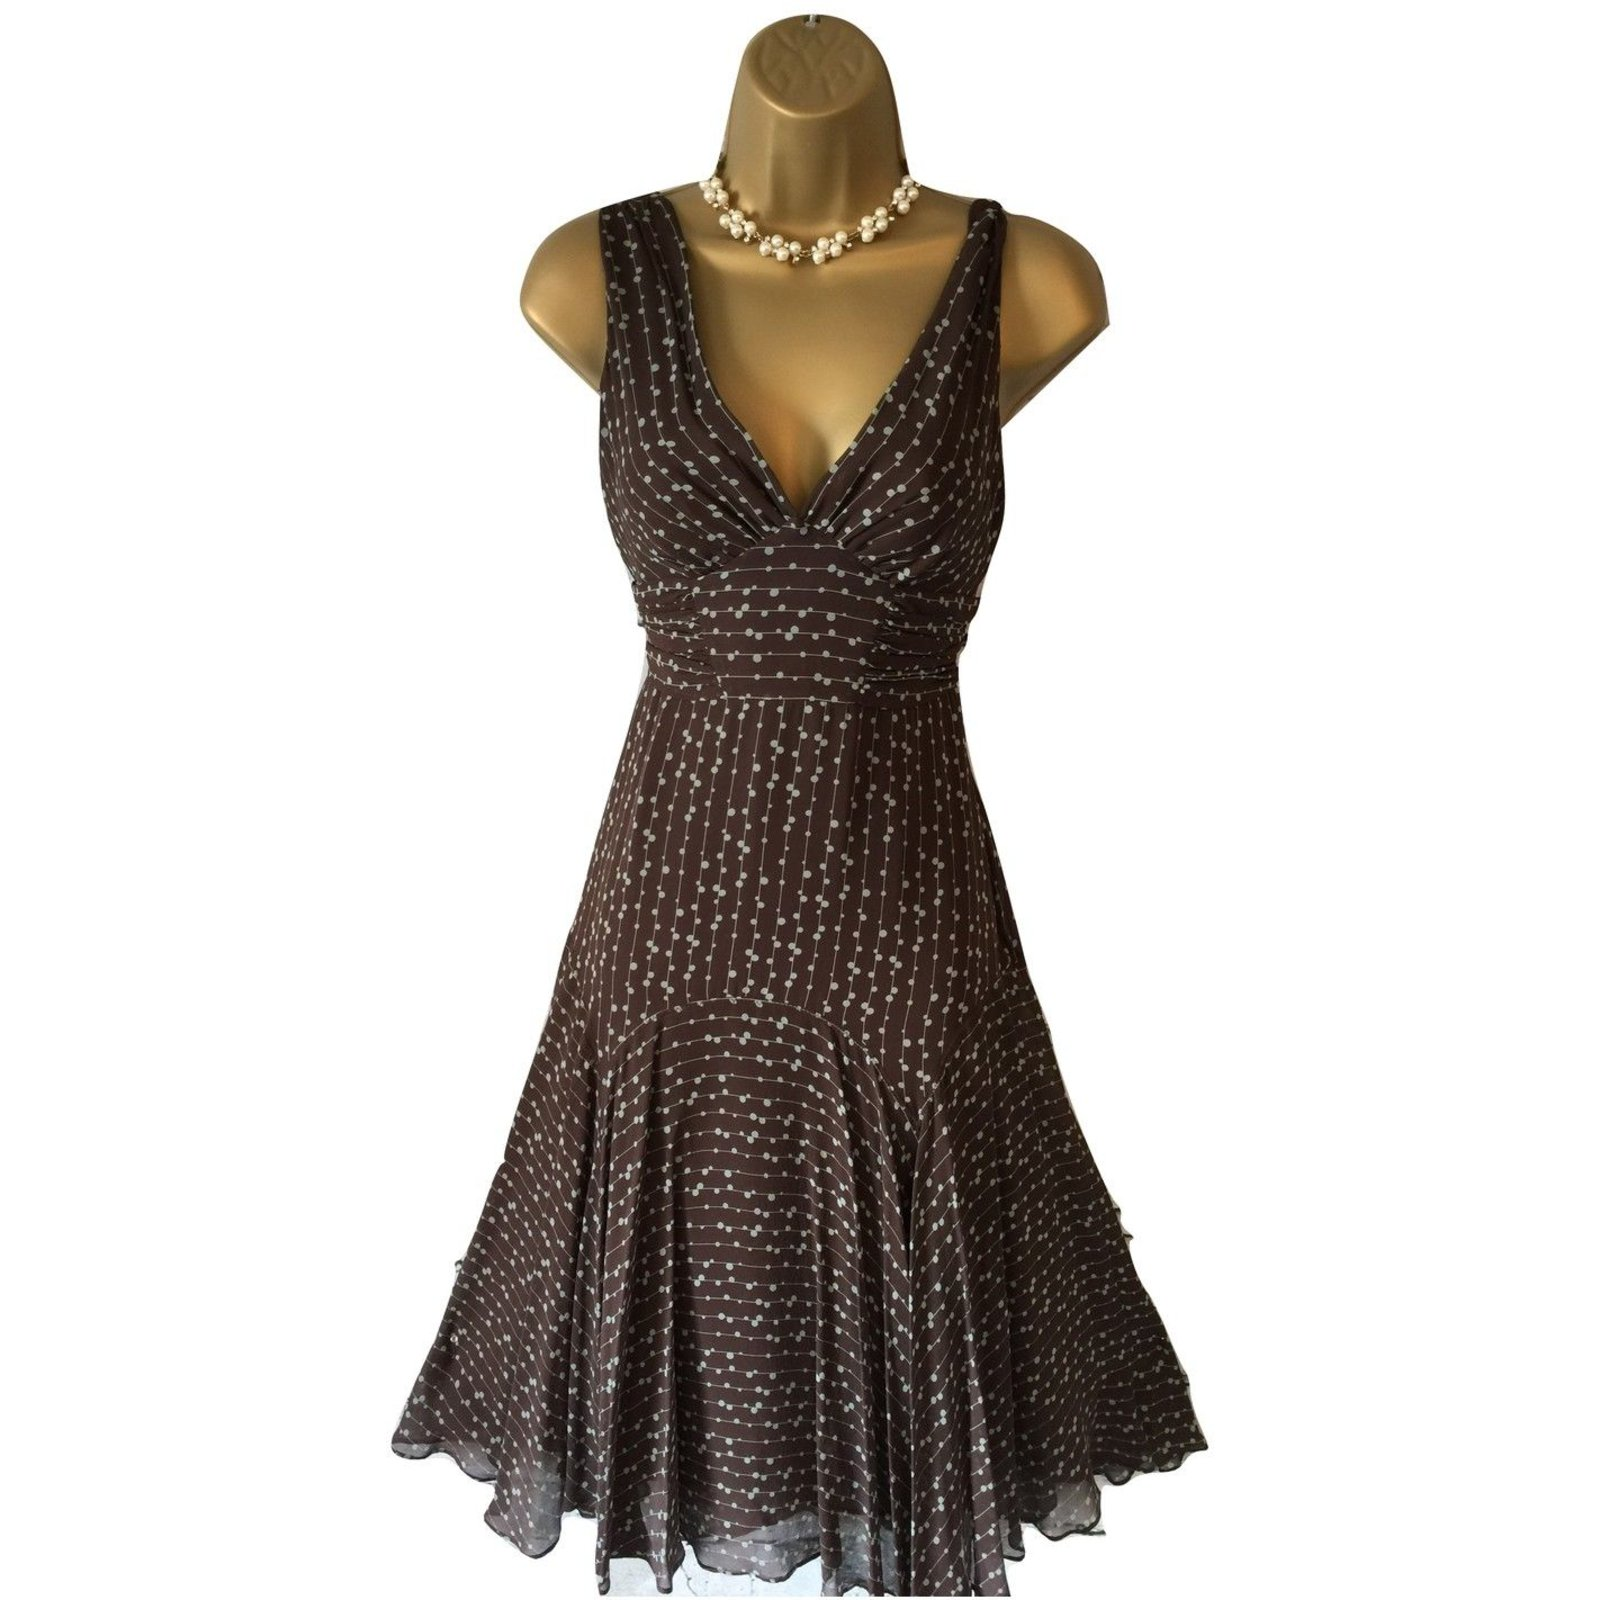 a6ad23c5092 Ted Baker Dresses Dresses Silk Brown